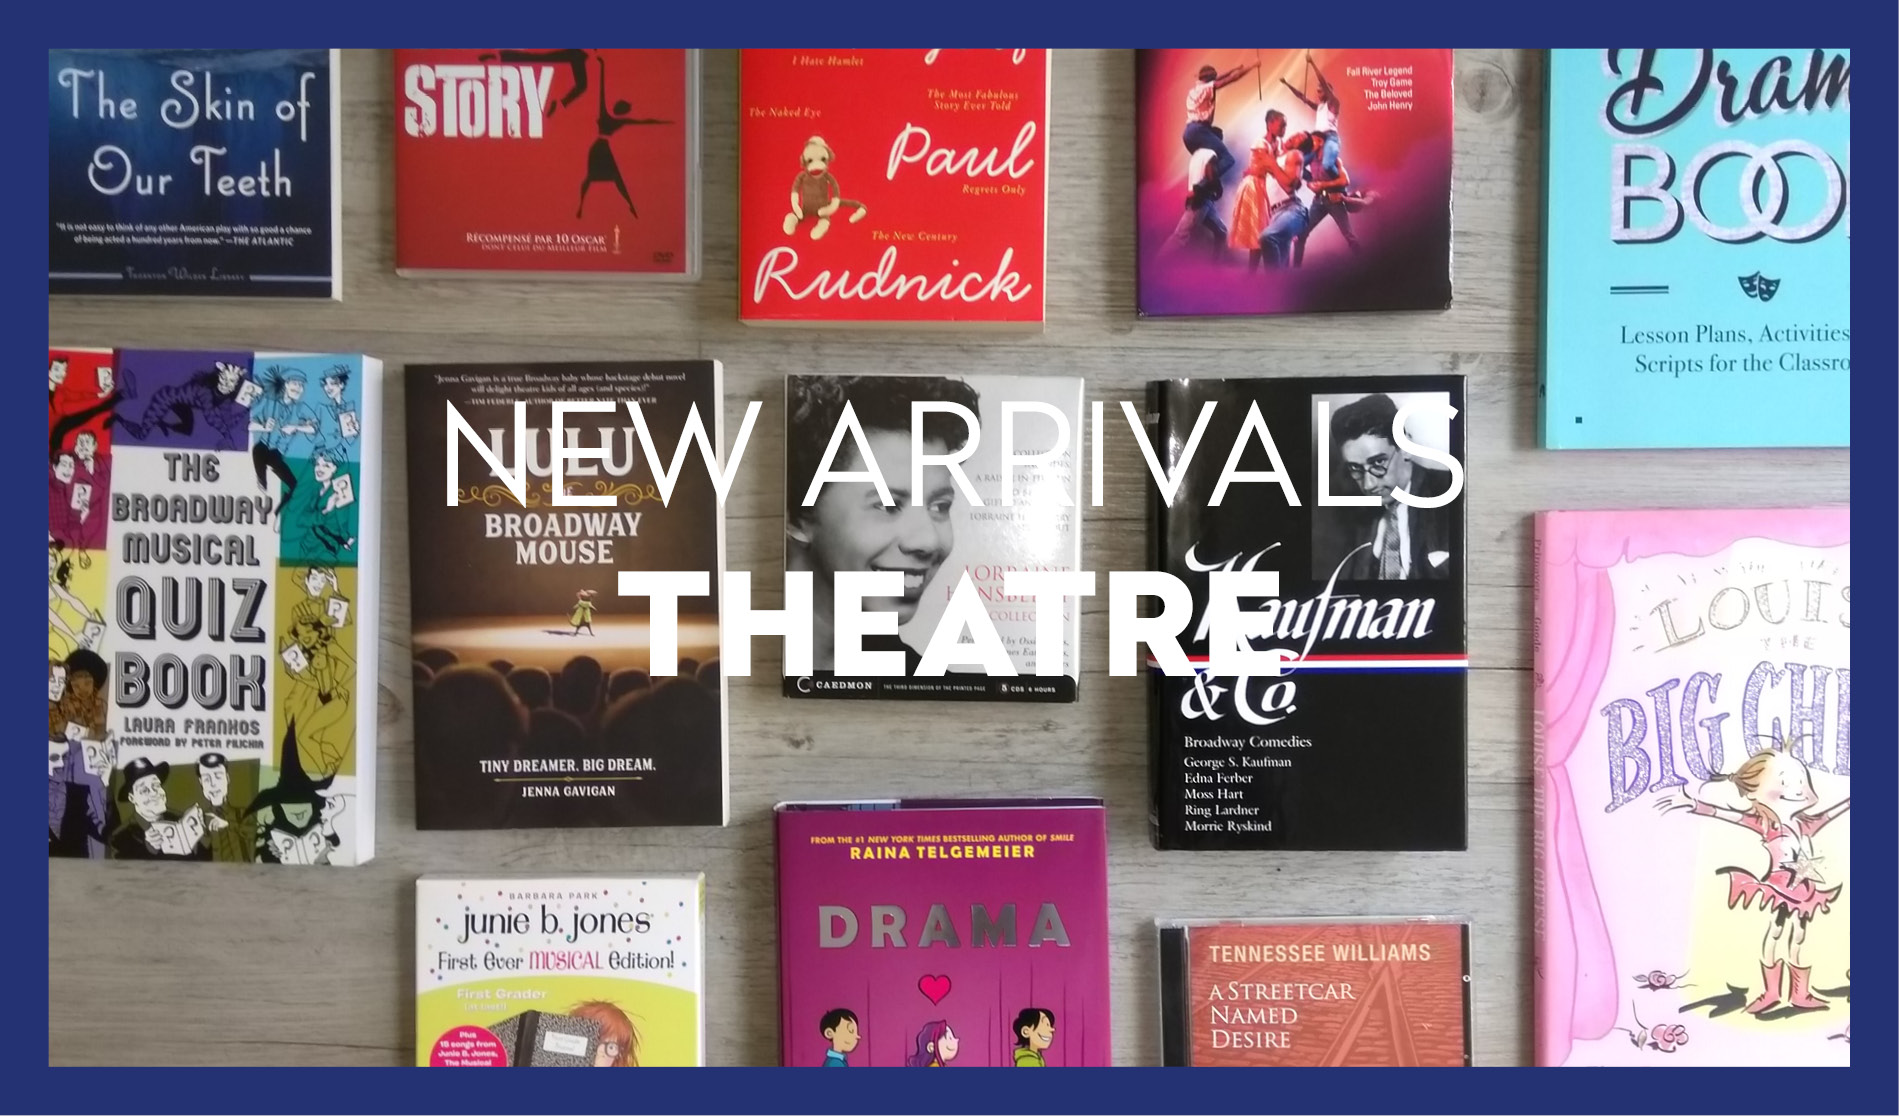 New Arrivals ★ Theater